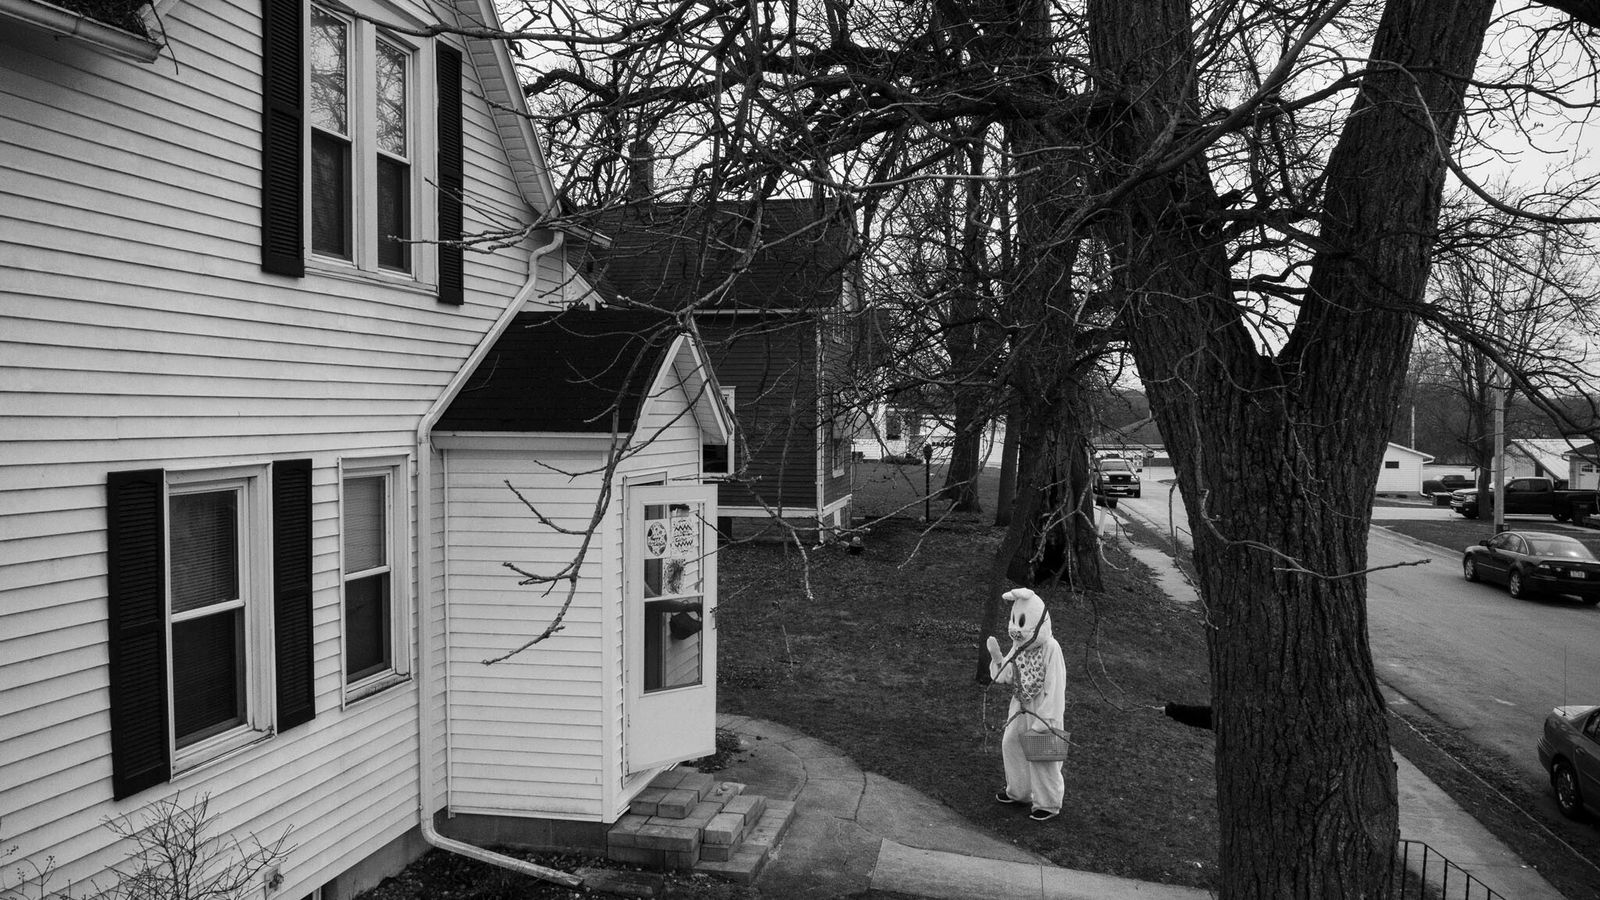 While David Guttenfelder was driving through Lake Mills, Iowa, he saw someone dressed as the Easter ...